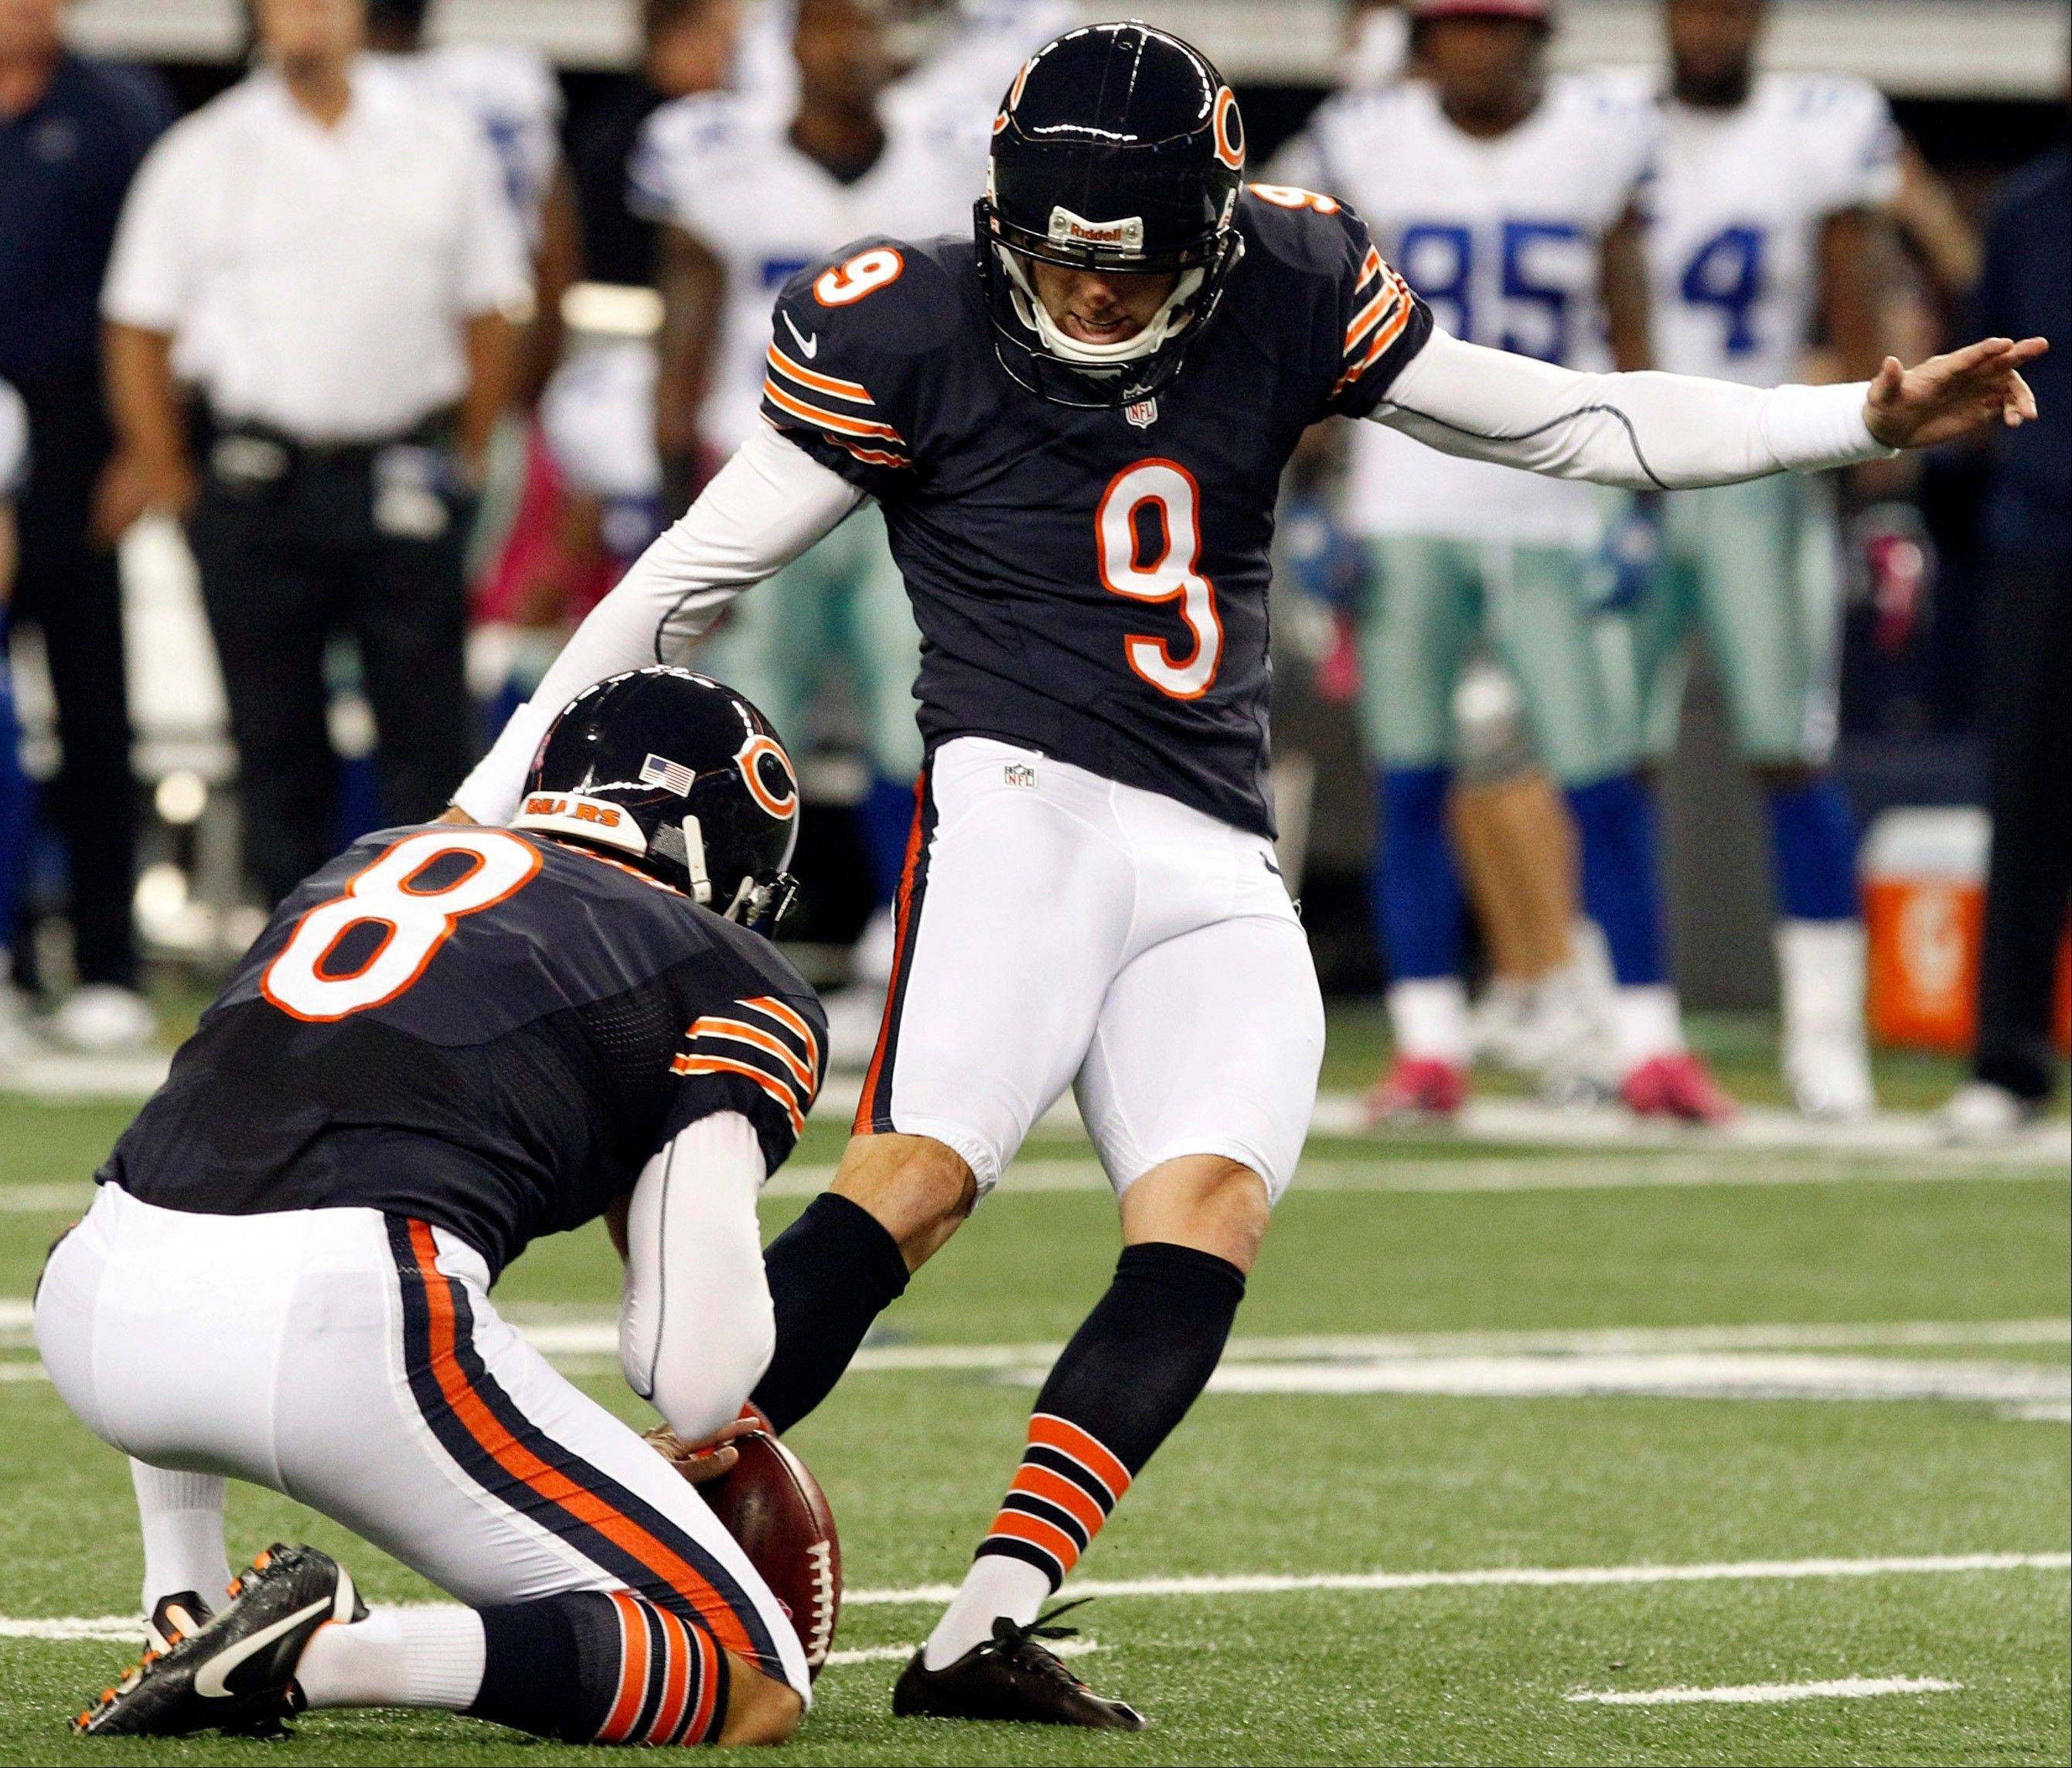 Chicago Bears punter Adam Podlesh holds as kicker Robbie Gould makes a field goal against the Chicago Bears during the first half.